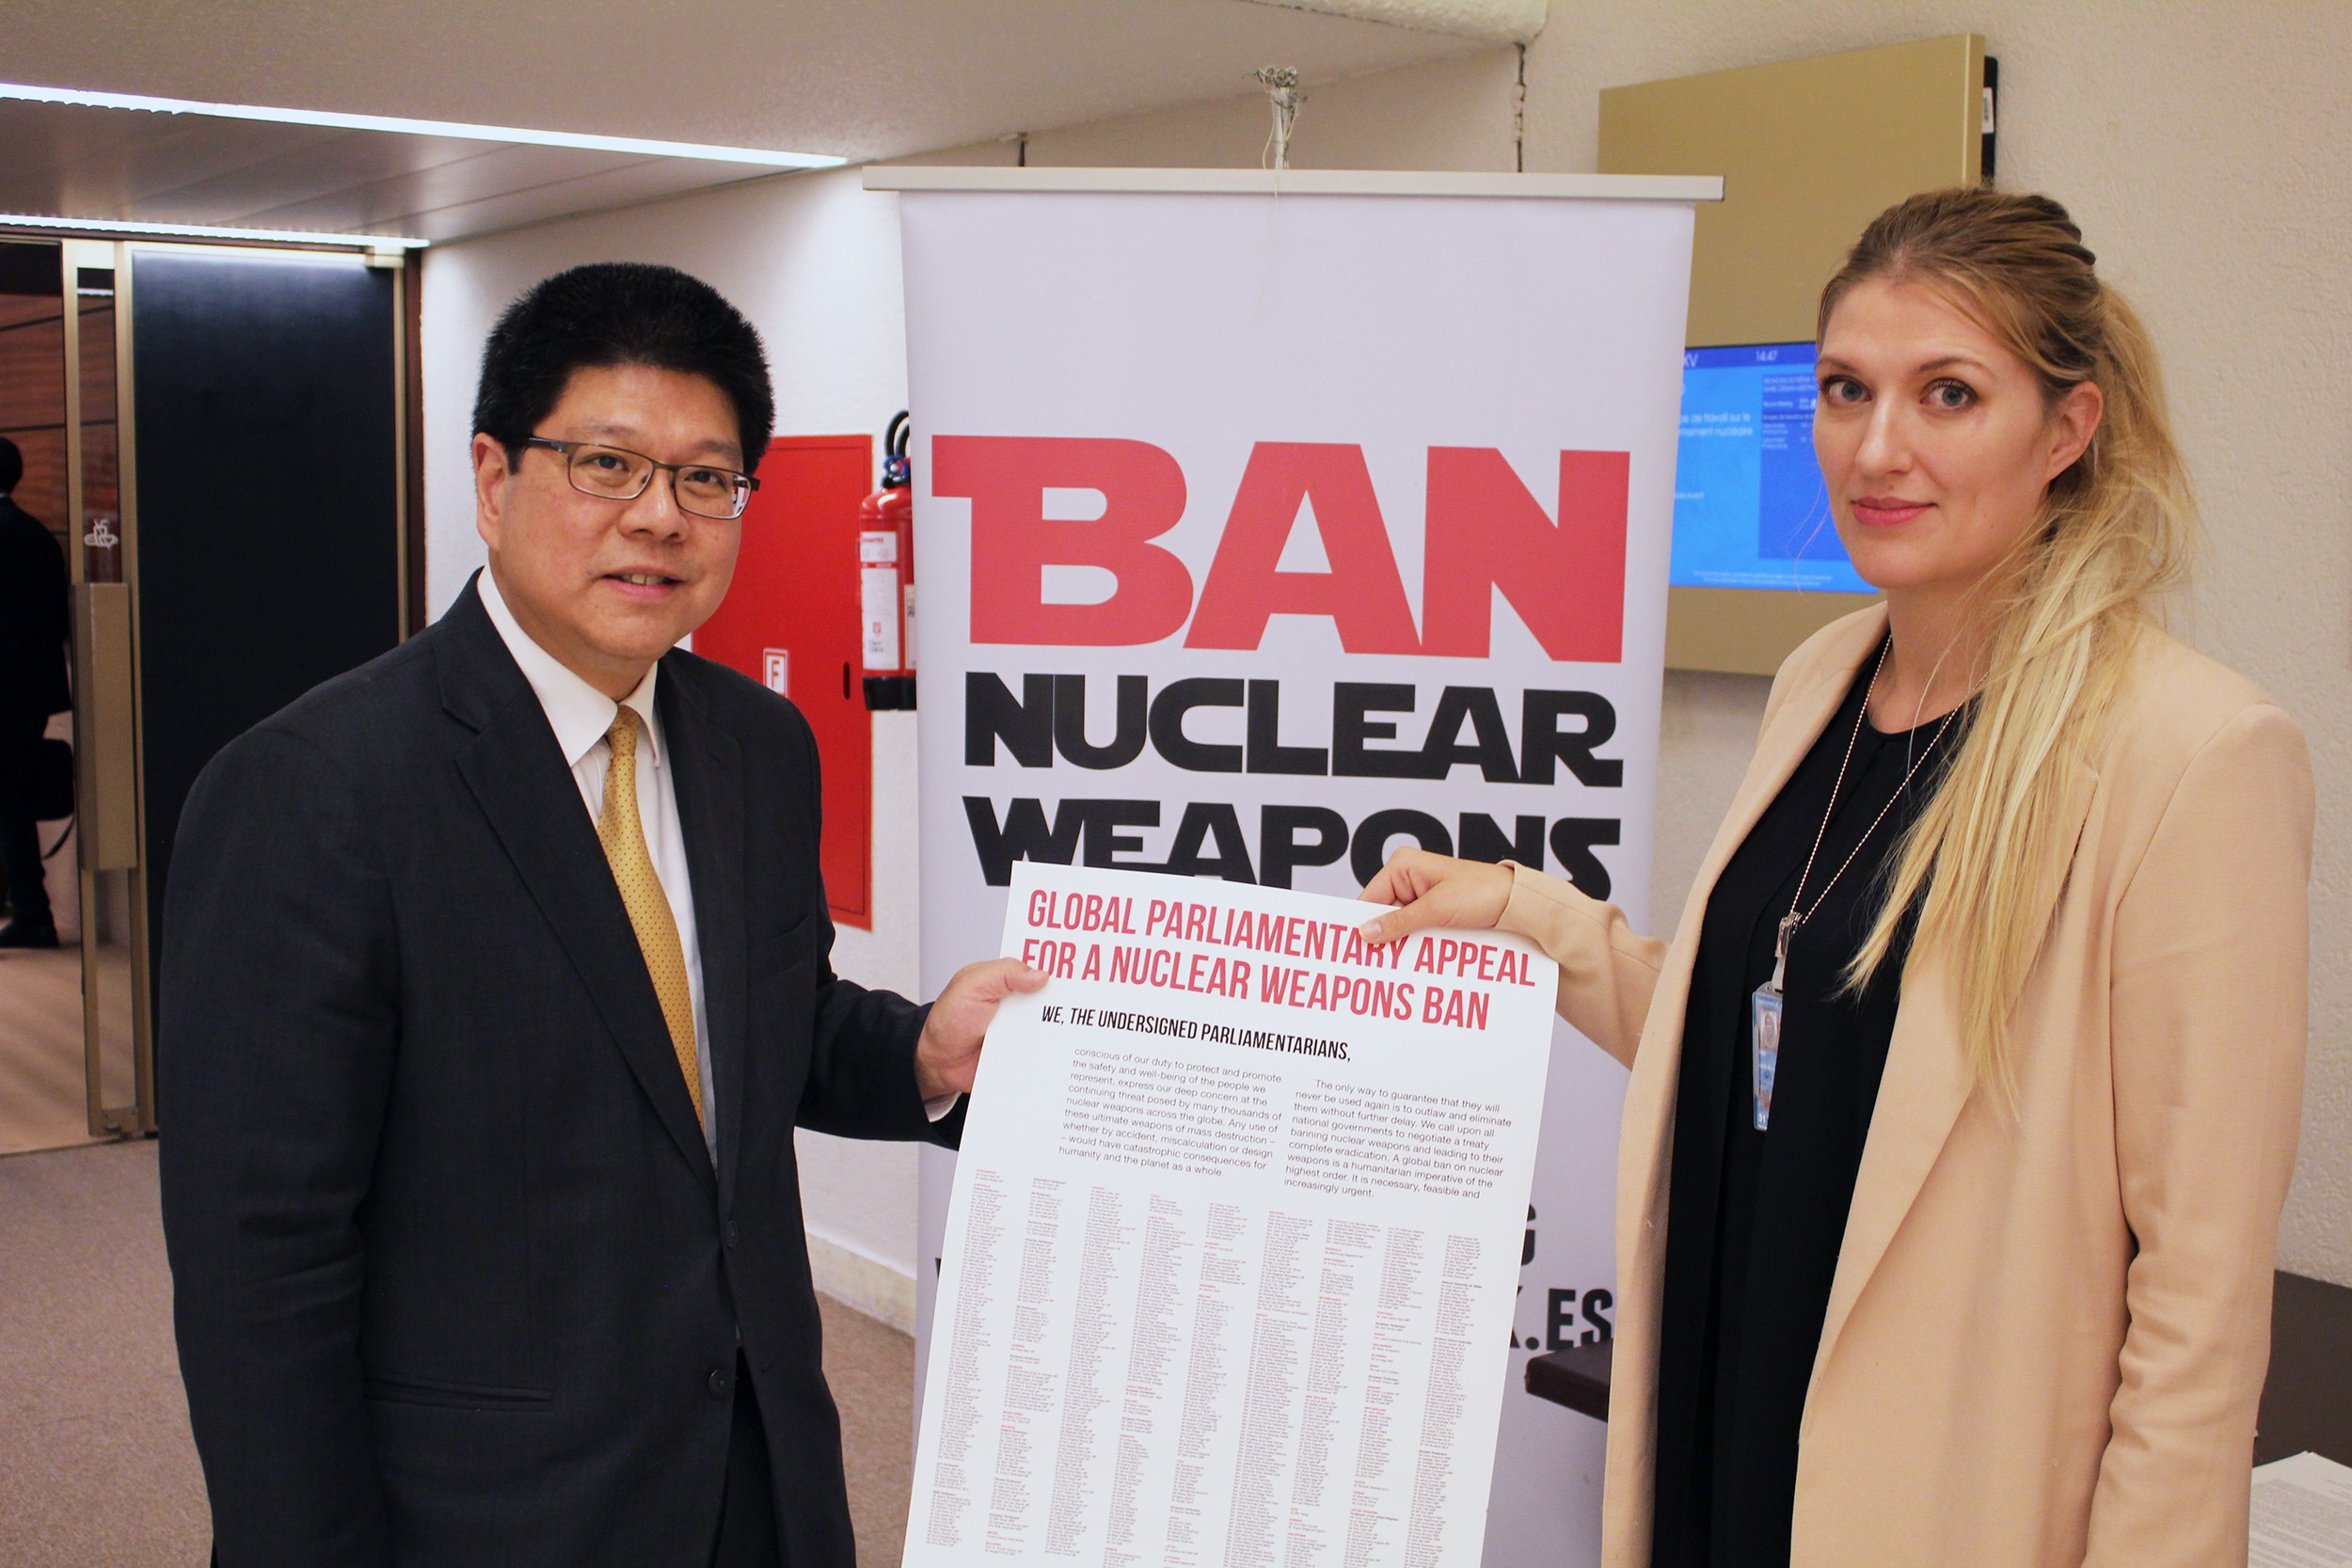 Nuclear Weapon Ban Convention – Overview of First Draft